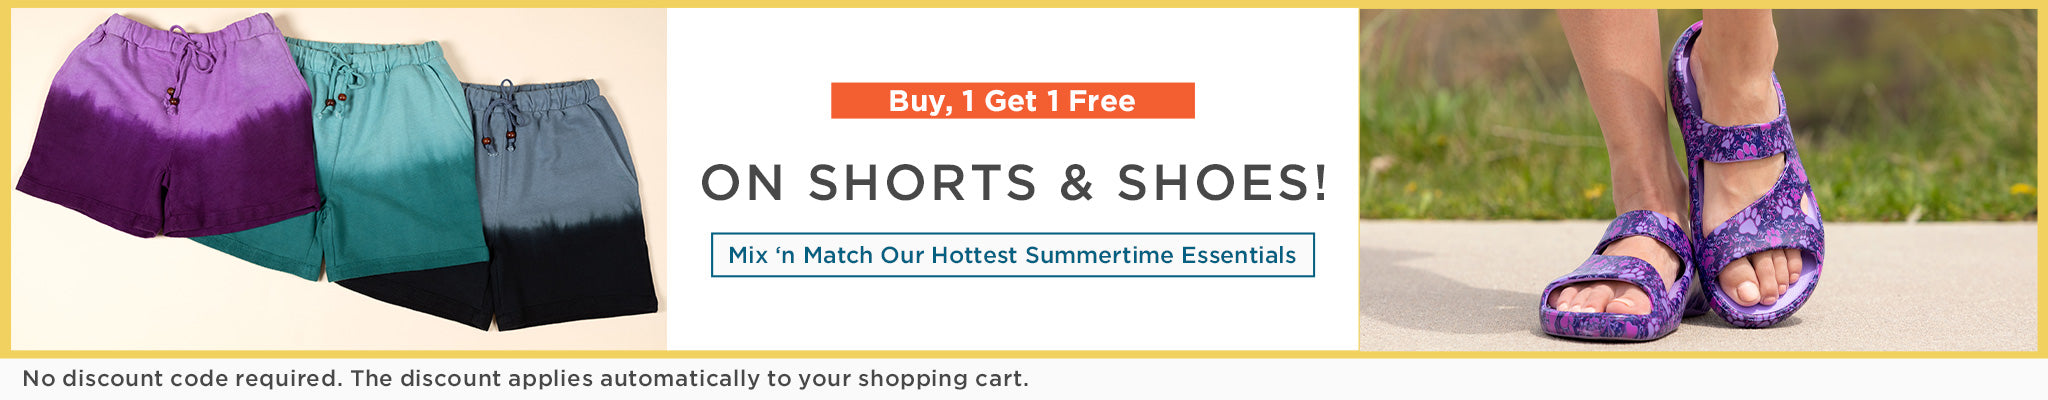 Buy 1, Get 1 Free on Shorts And Shoes!